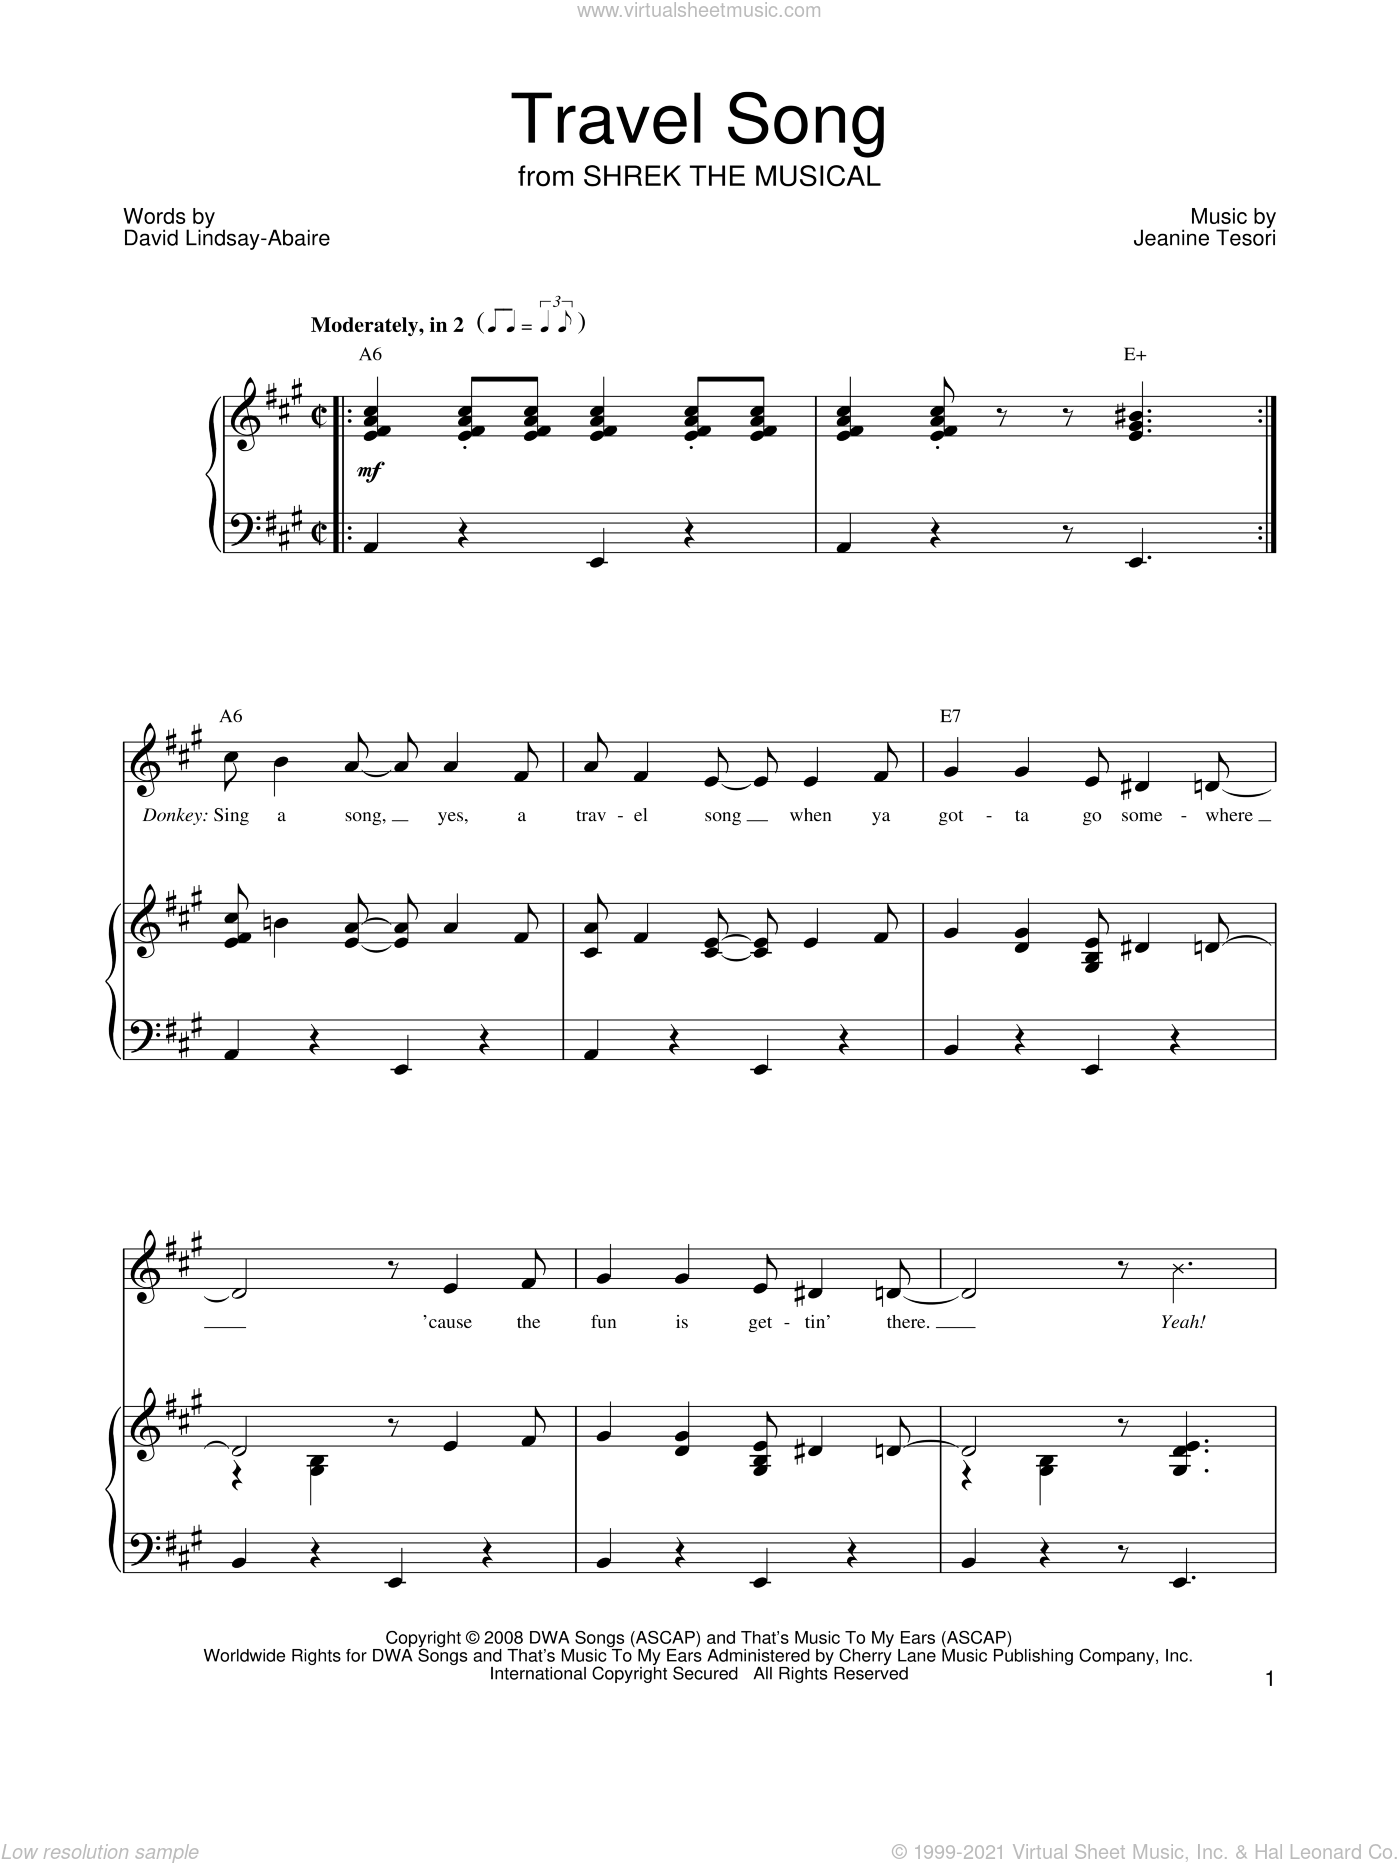 Travel Song sheet music for voice, piano or guitar by Shrek The Musical, David Lindsay-Abaire and Jeanine Tesori, intermediate skill level